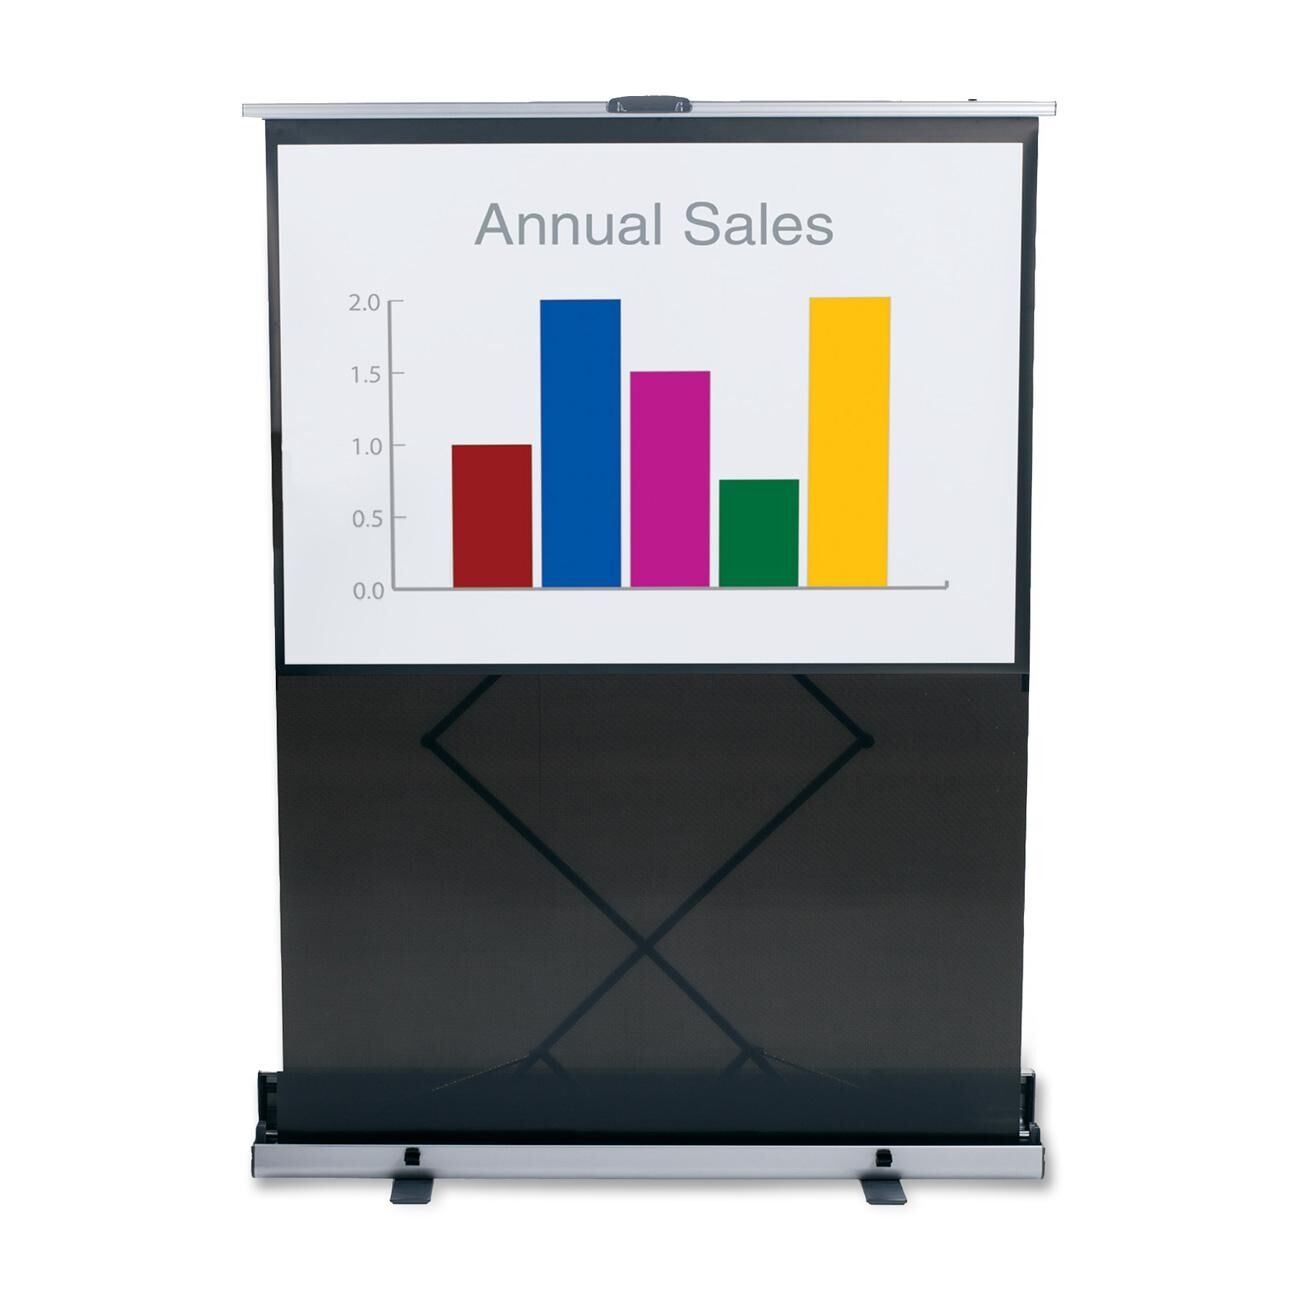 Black Portable Projection Screen Size: 80